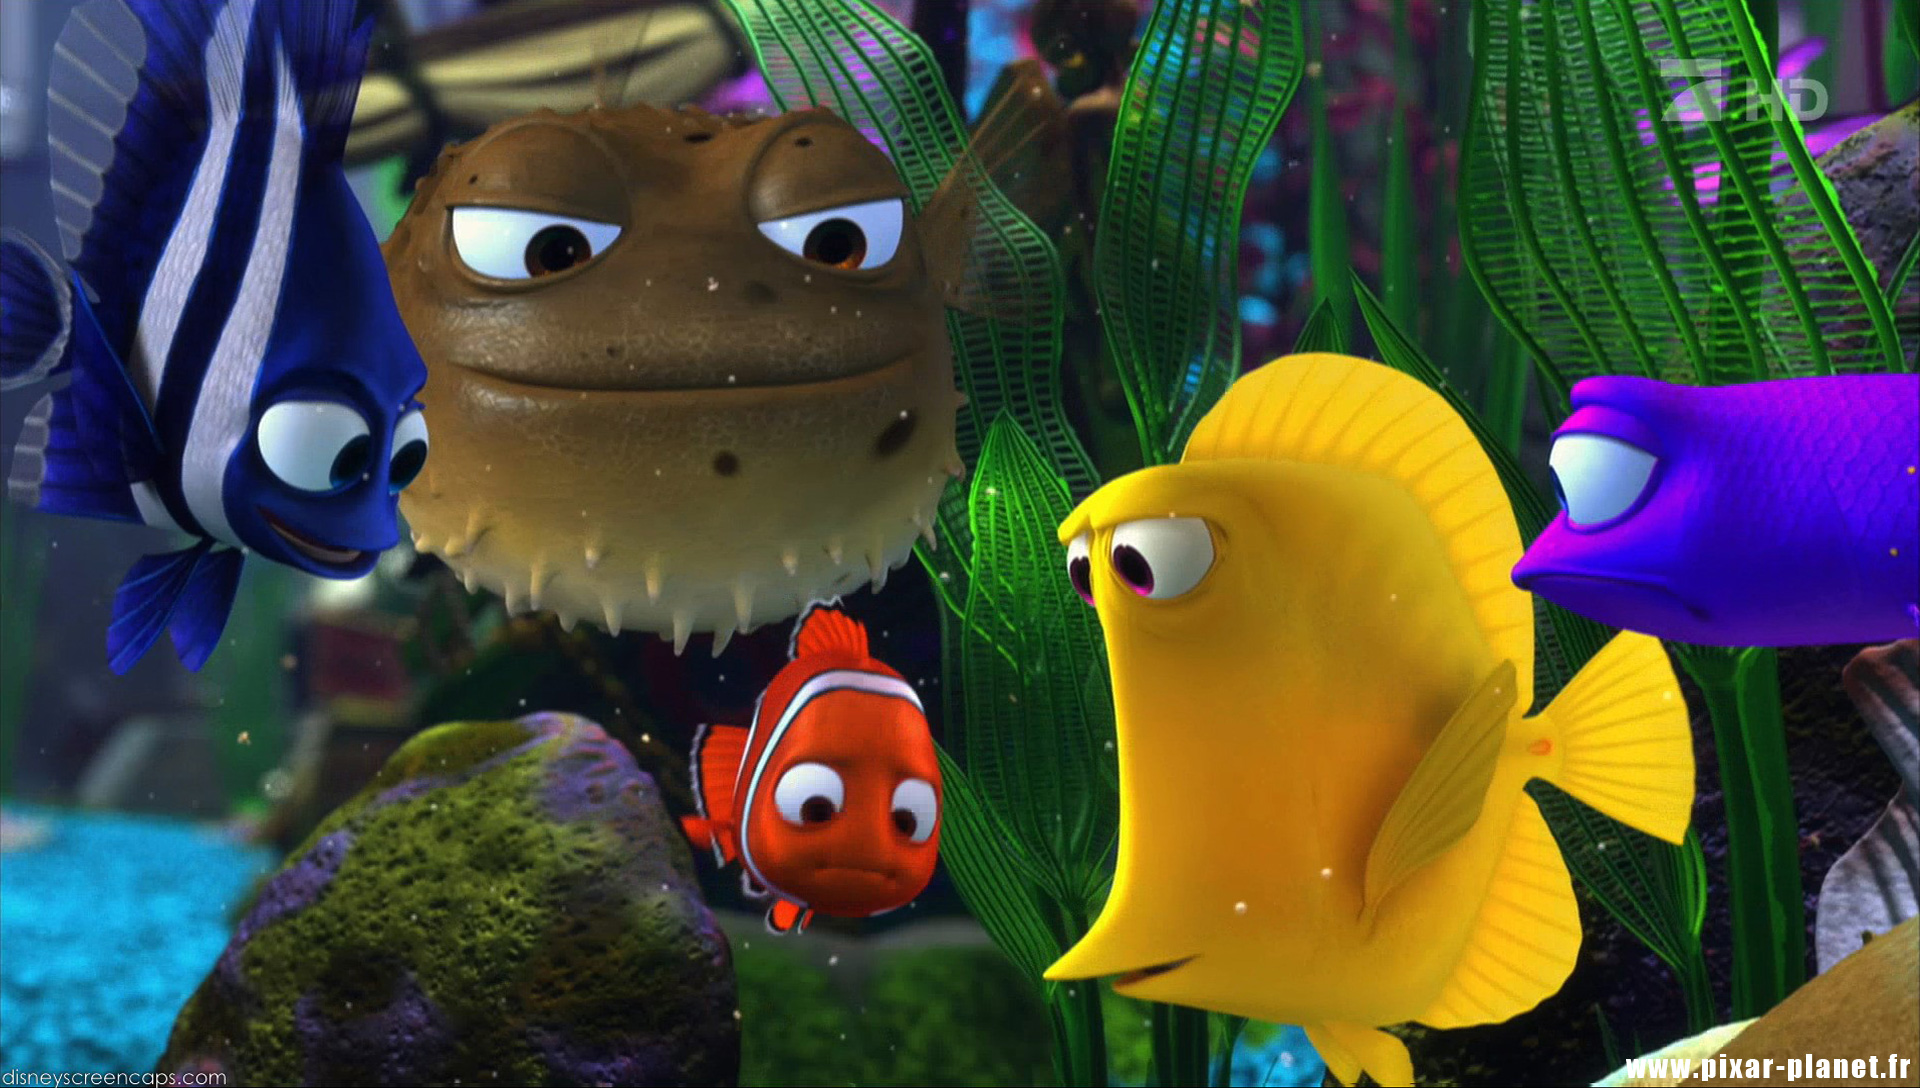 Quotes from finding nemo pixar planet fr for Bubbles fish finding nemo